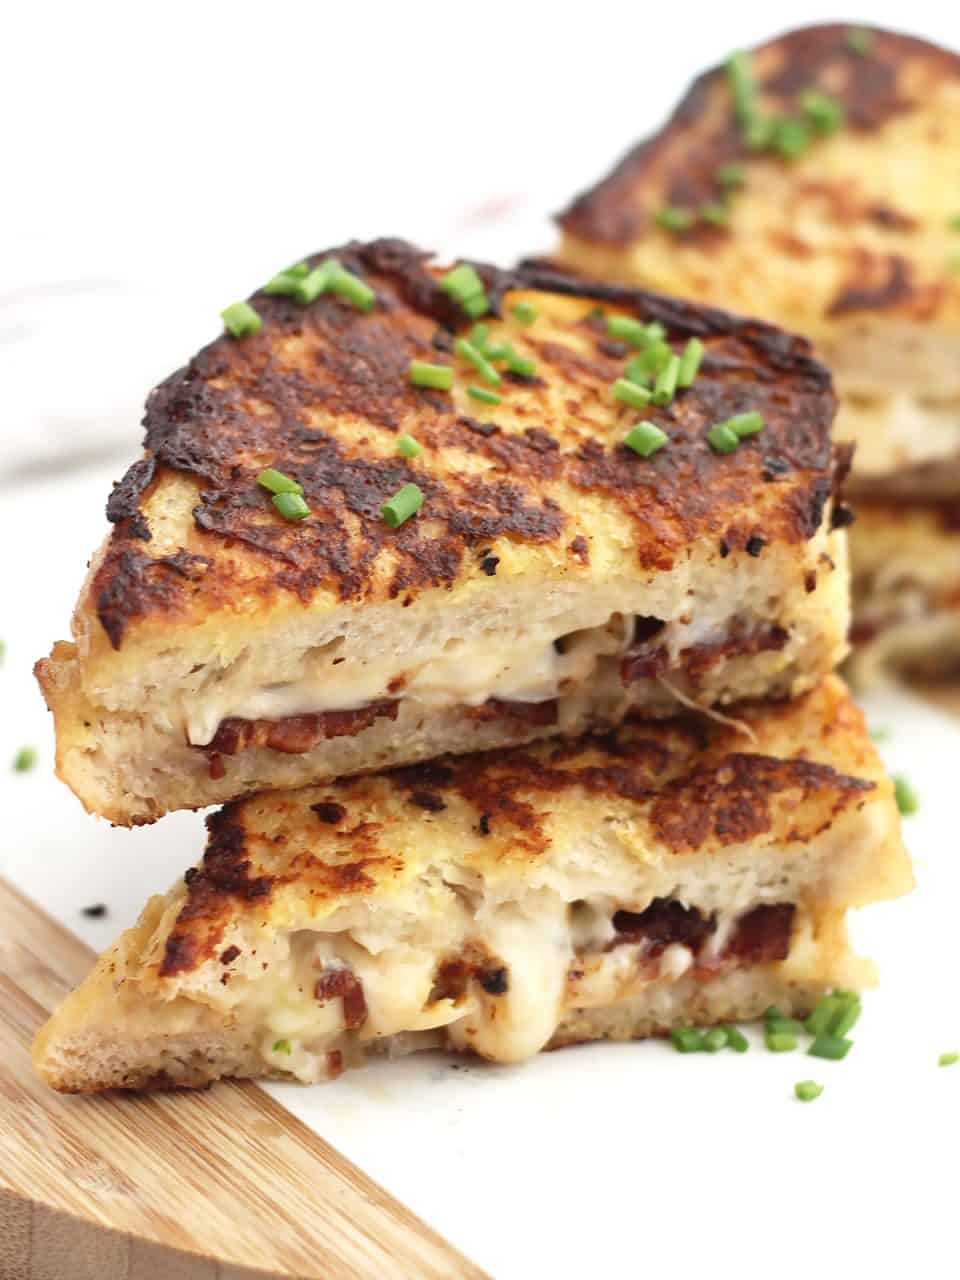 Two pieces of savory French toast stacked on top of each other.